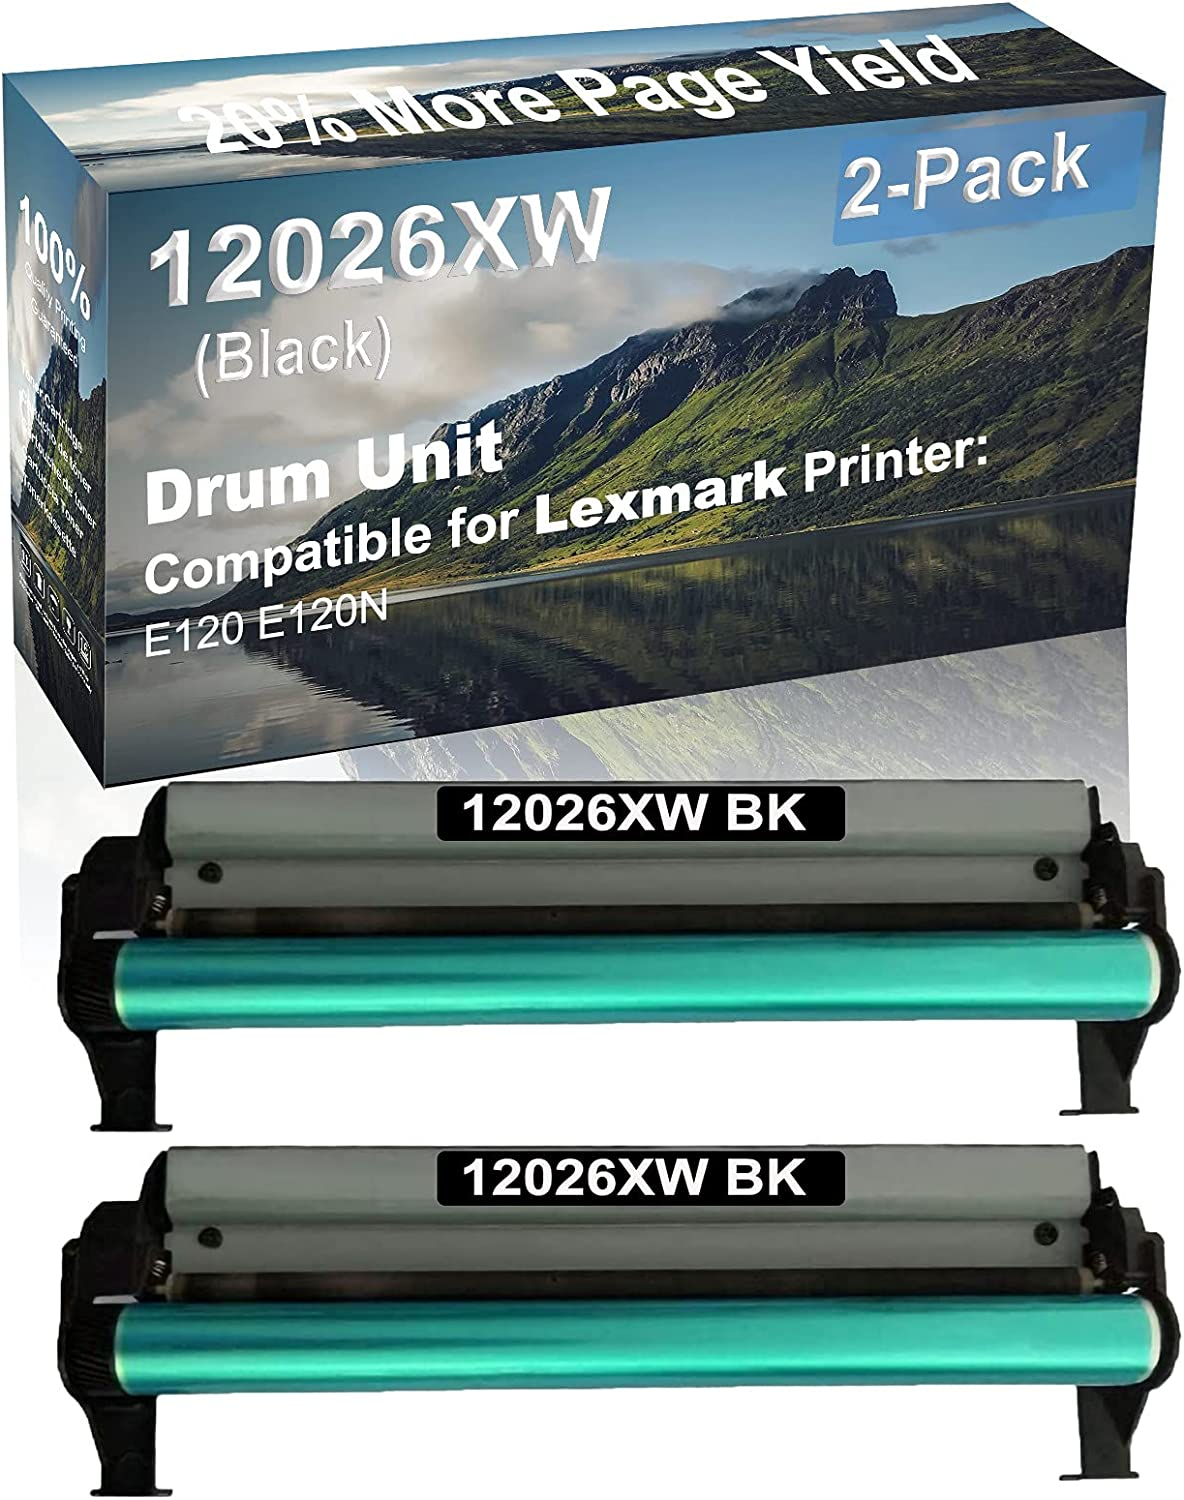 2-Pack Compatible Drum Unit (Black) Replacement for Lexmark 12026XW Drum Kit use for Lexmark E120 E120N Printer